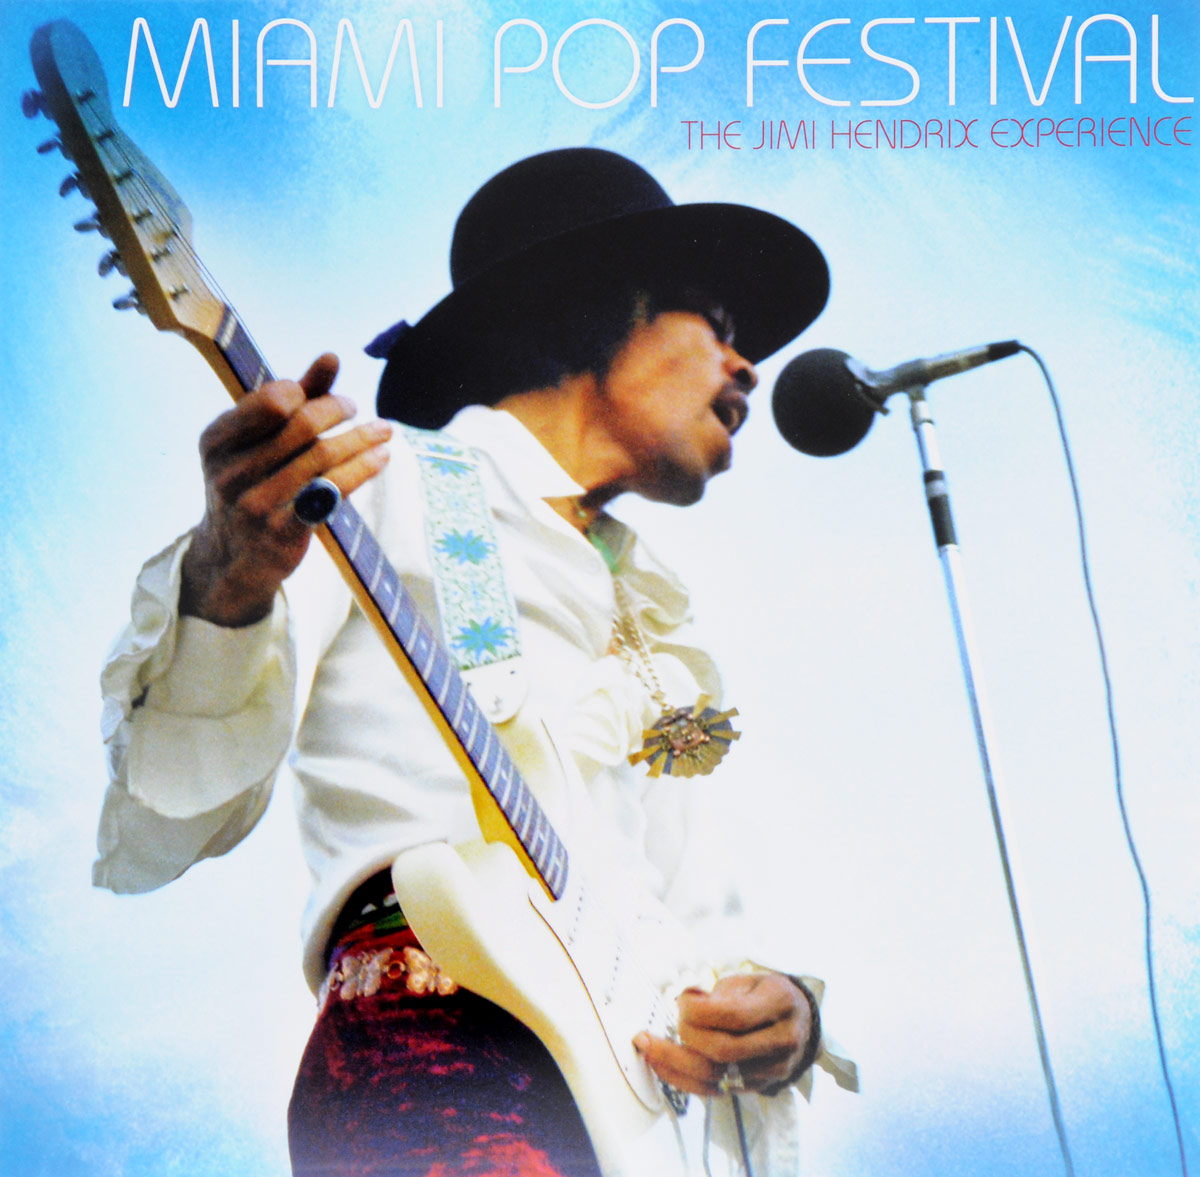 Джими Хендрикс Jimi Hendrix. Miami Pop Festival (Experience) (2 LP) джими хендрикс jimi hendrix the cry of love lp